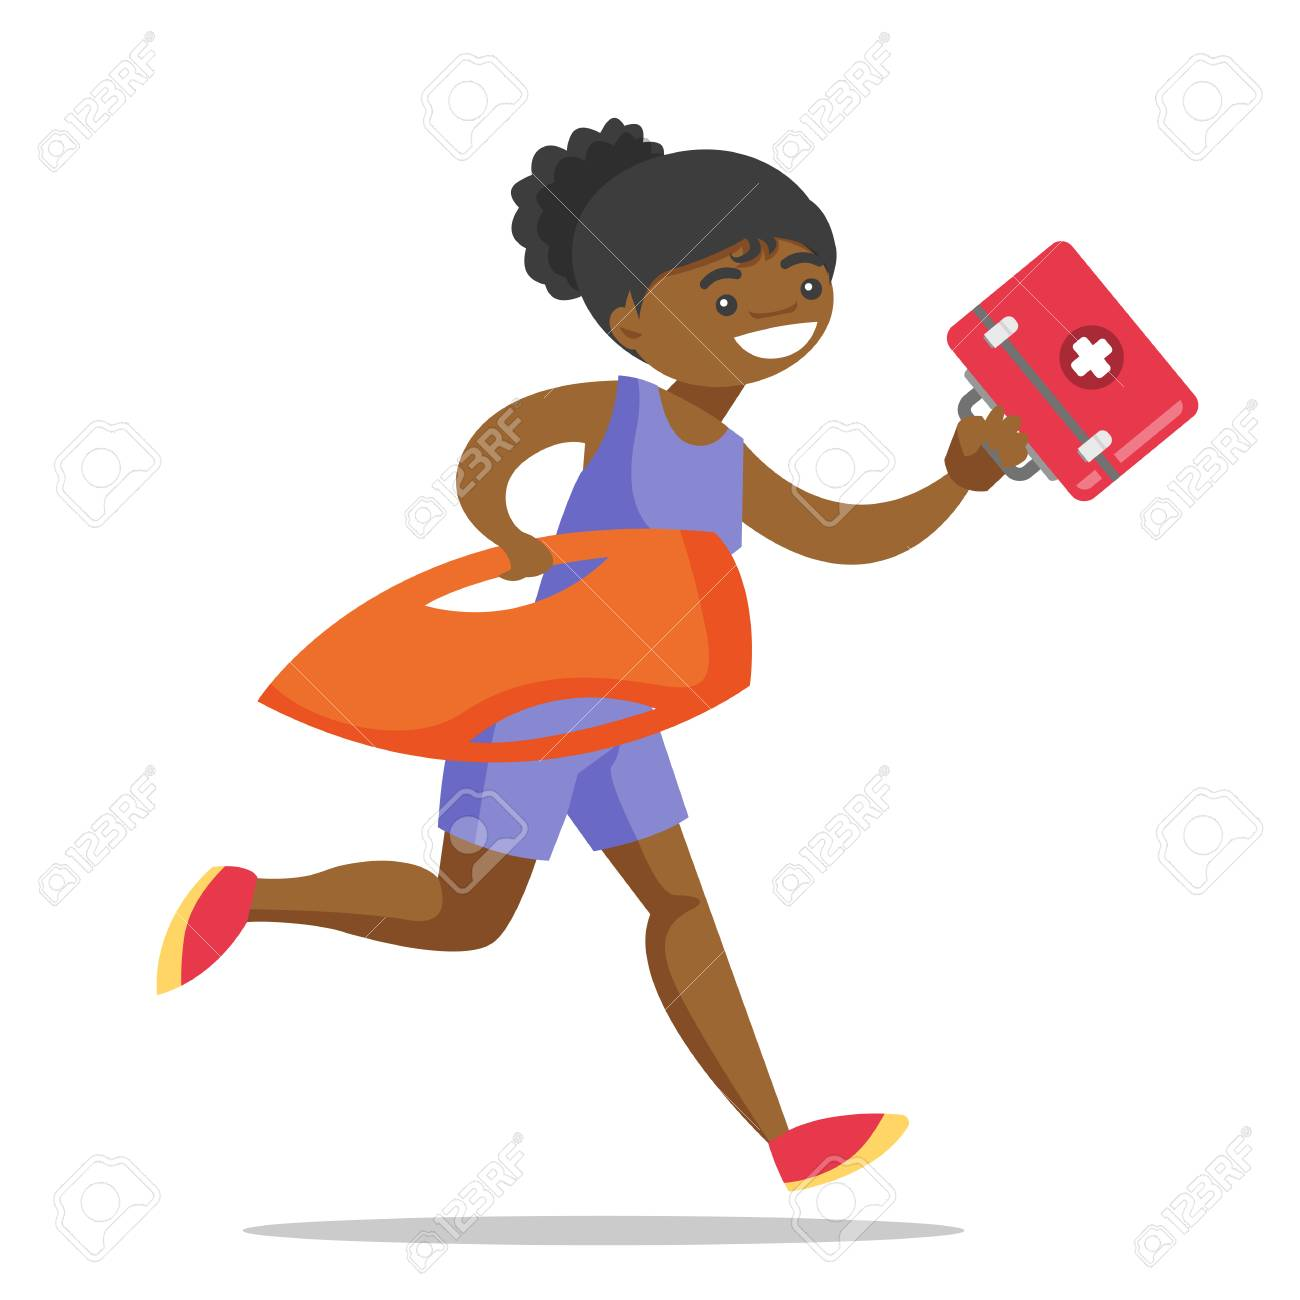 58651a8636c4 Vector - Young african-american female lifeguard in red swimsuit running  with life preserver buoy and first aid box. Professional rescuer holding  lifesaver ...